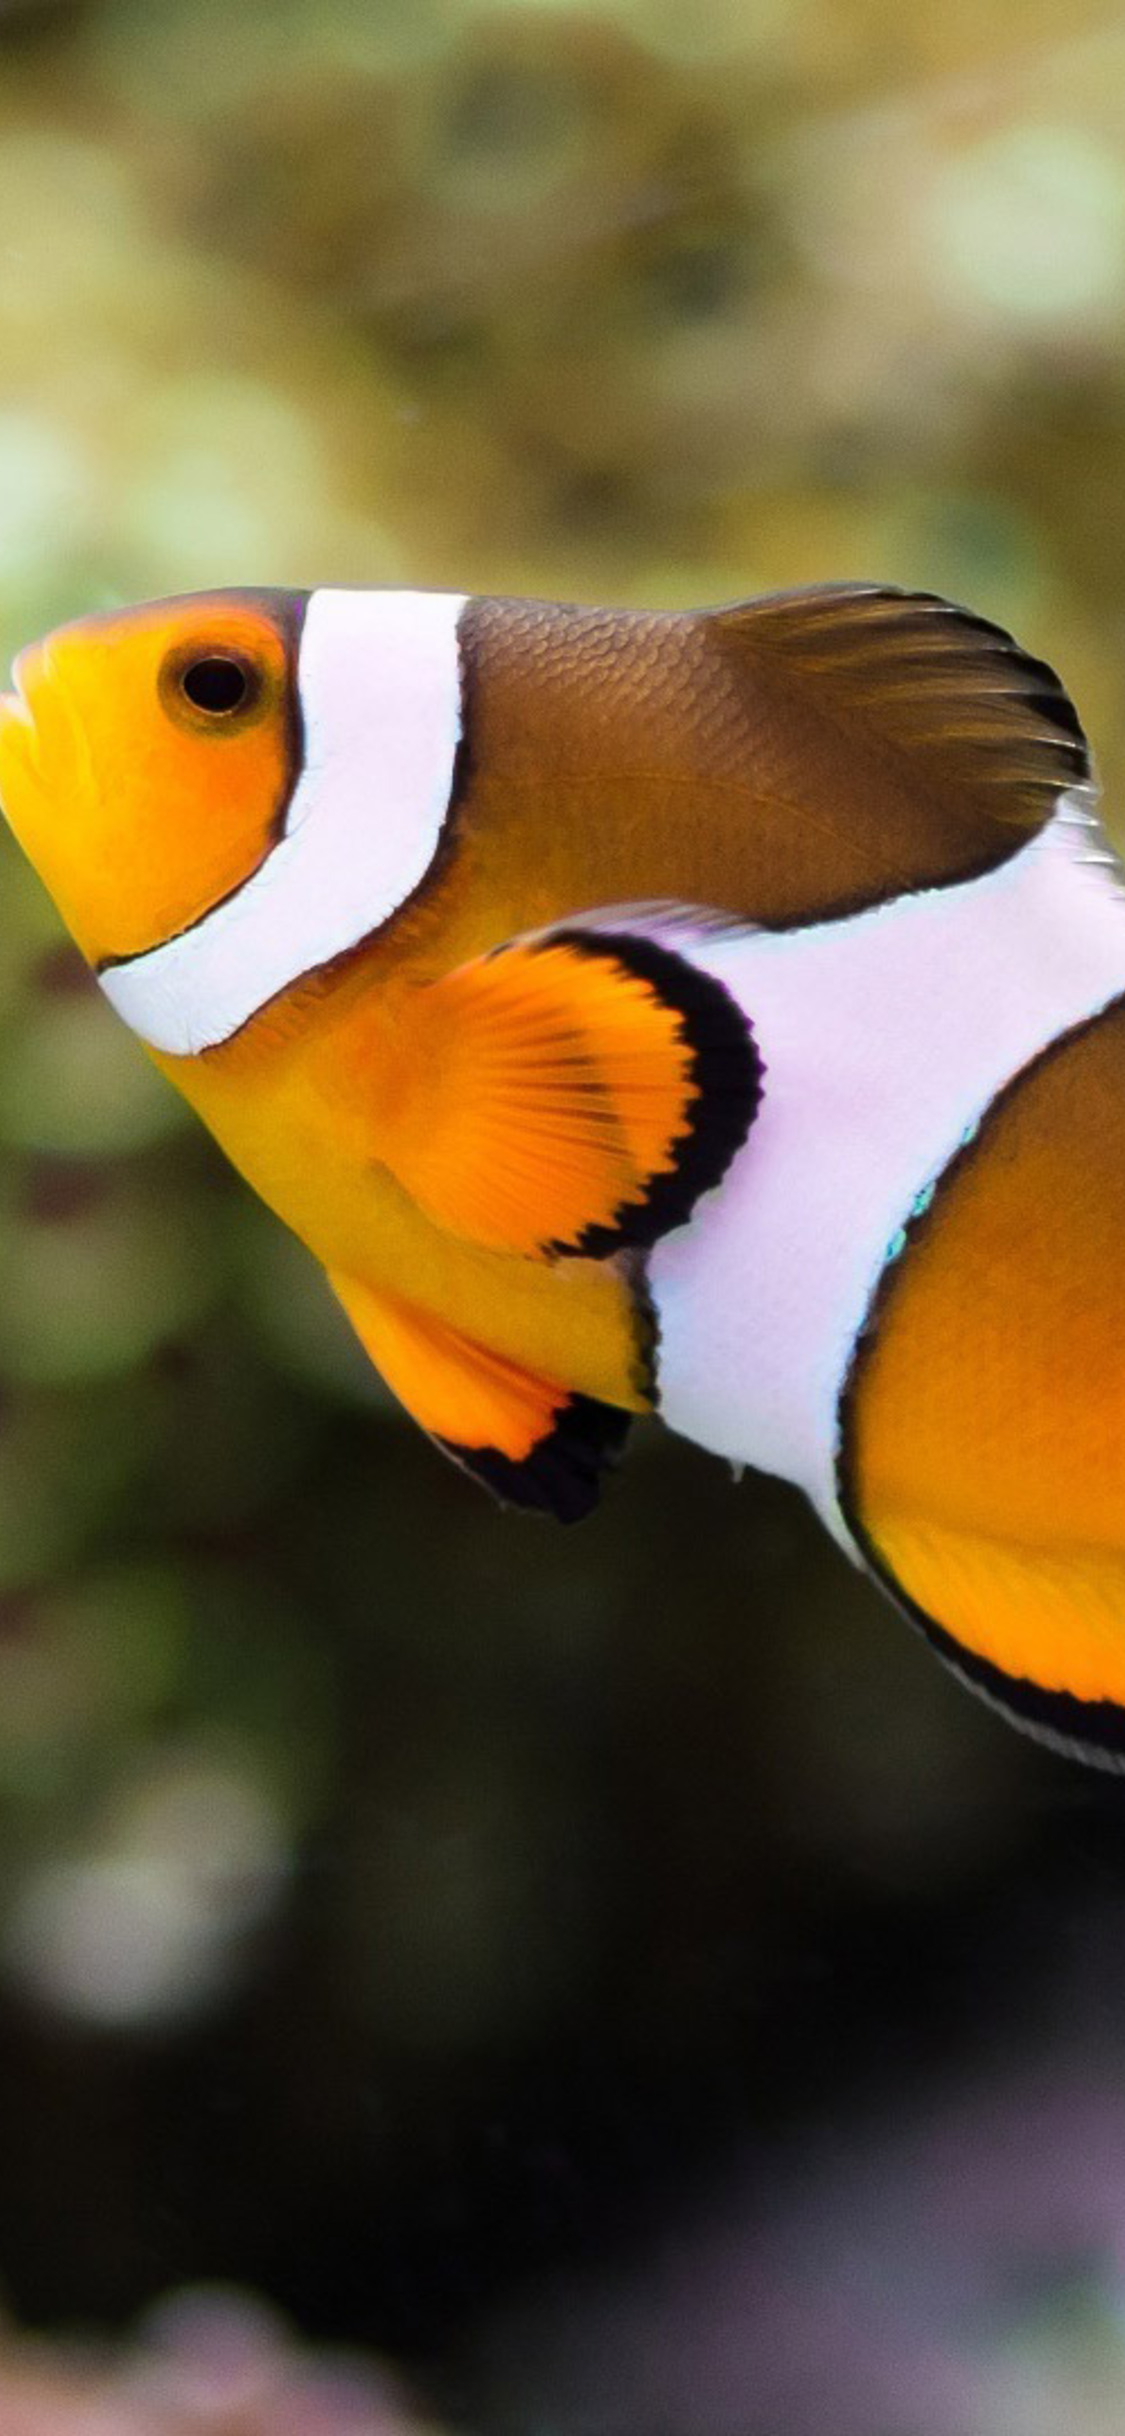 1125x2436 Clownfish Iphone Xs Iphone 10 Iphone X Hd 4k